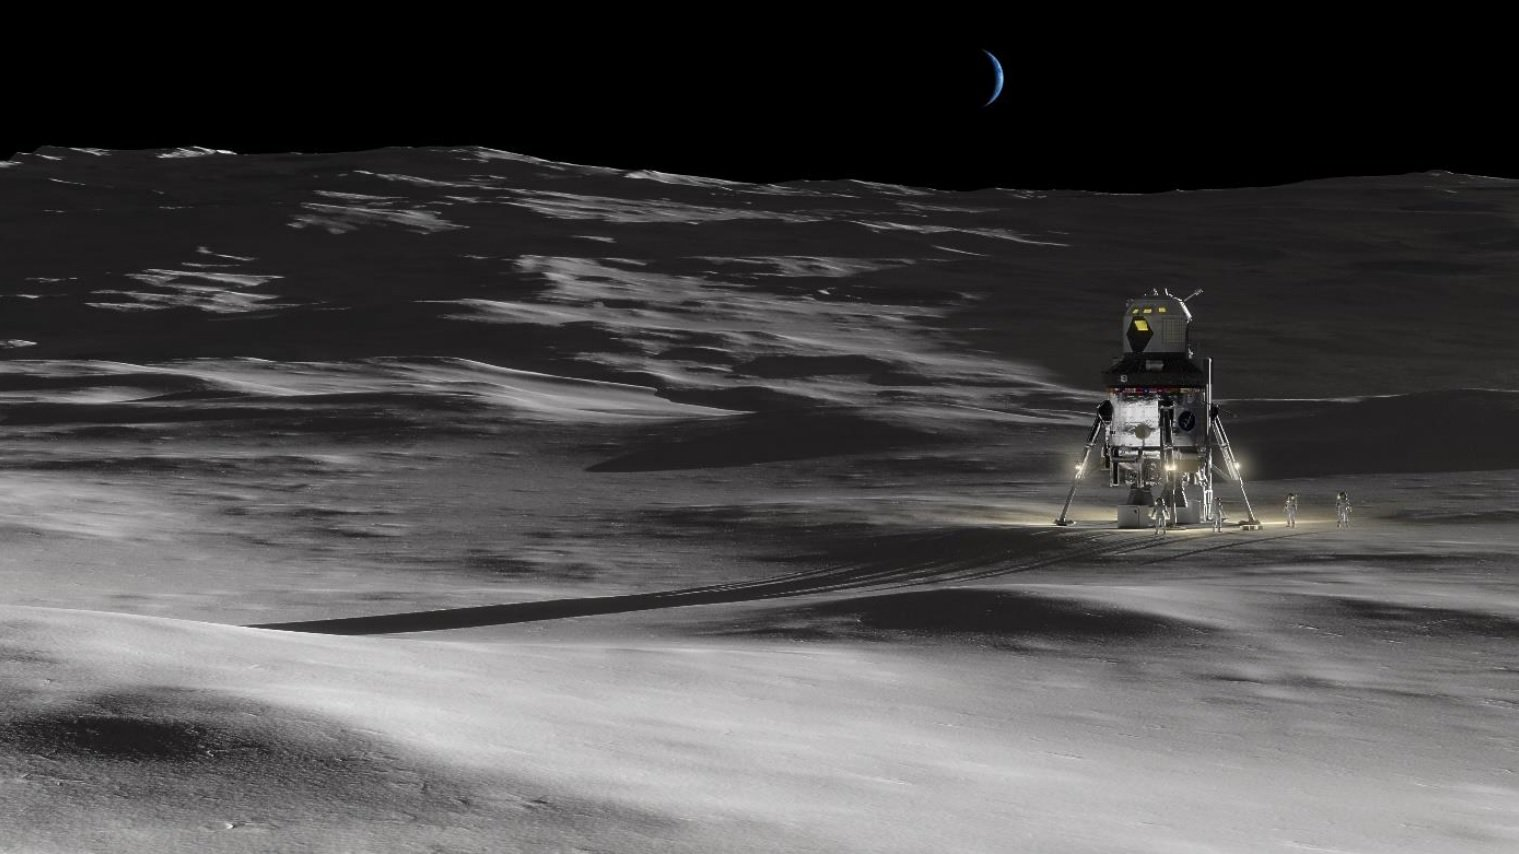 Lockheed Martin has introduced the concept of the lunar landing module for the station Gateway